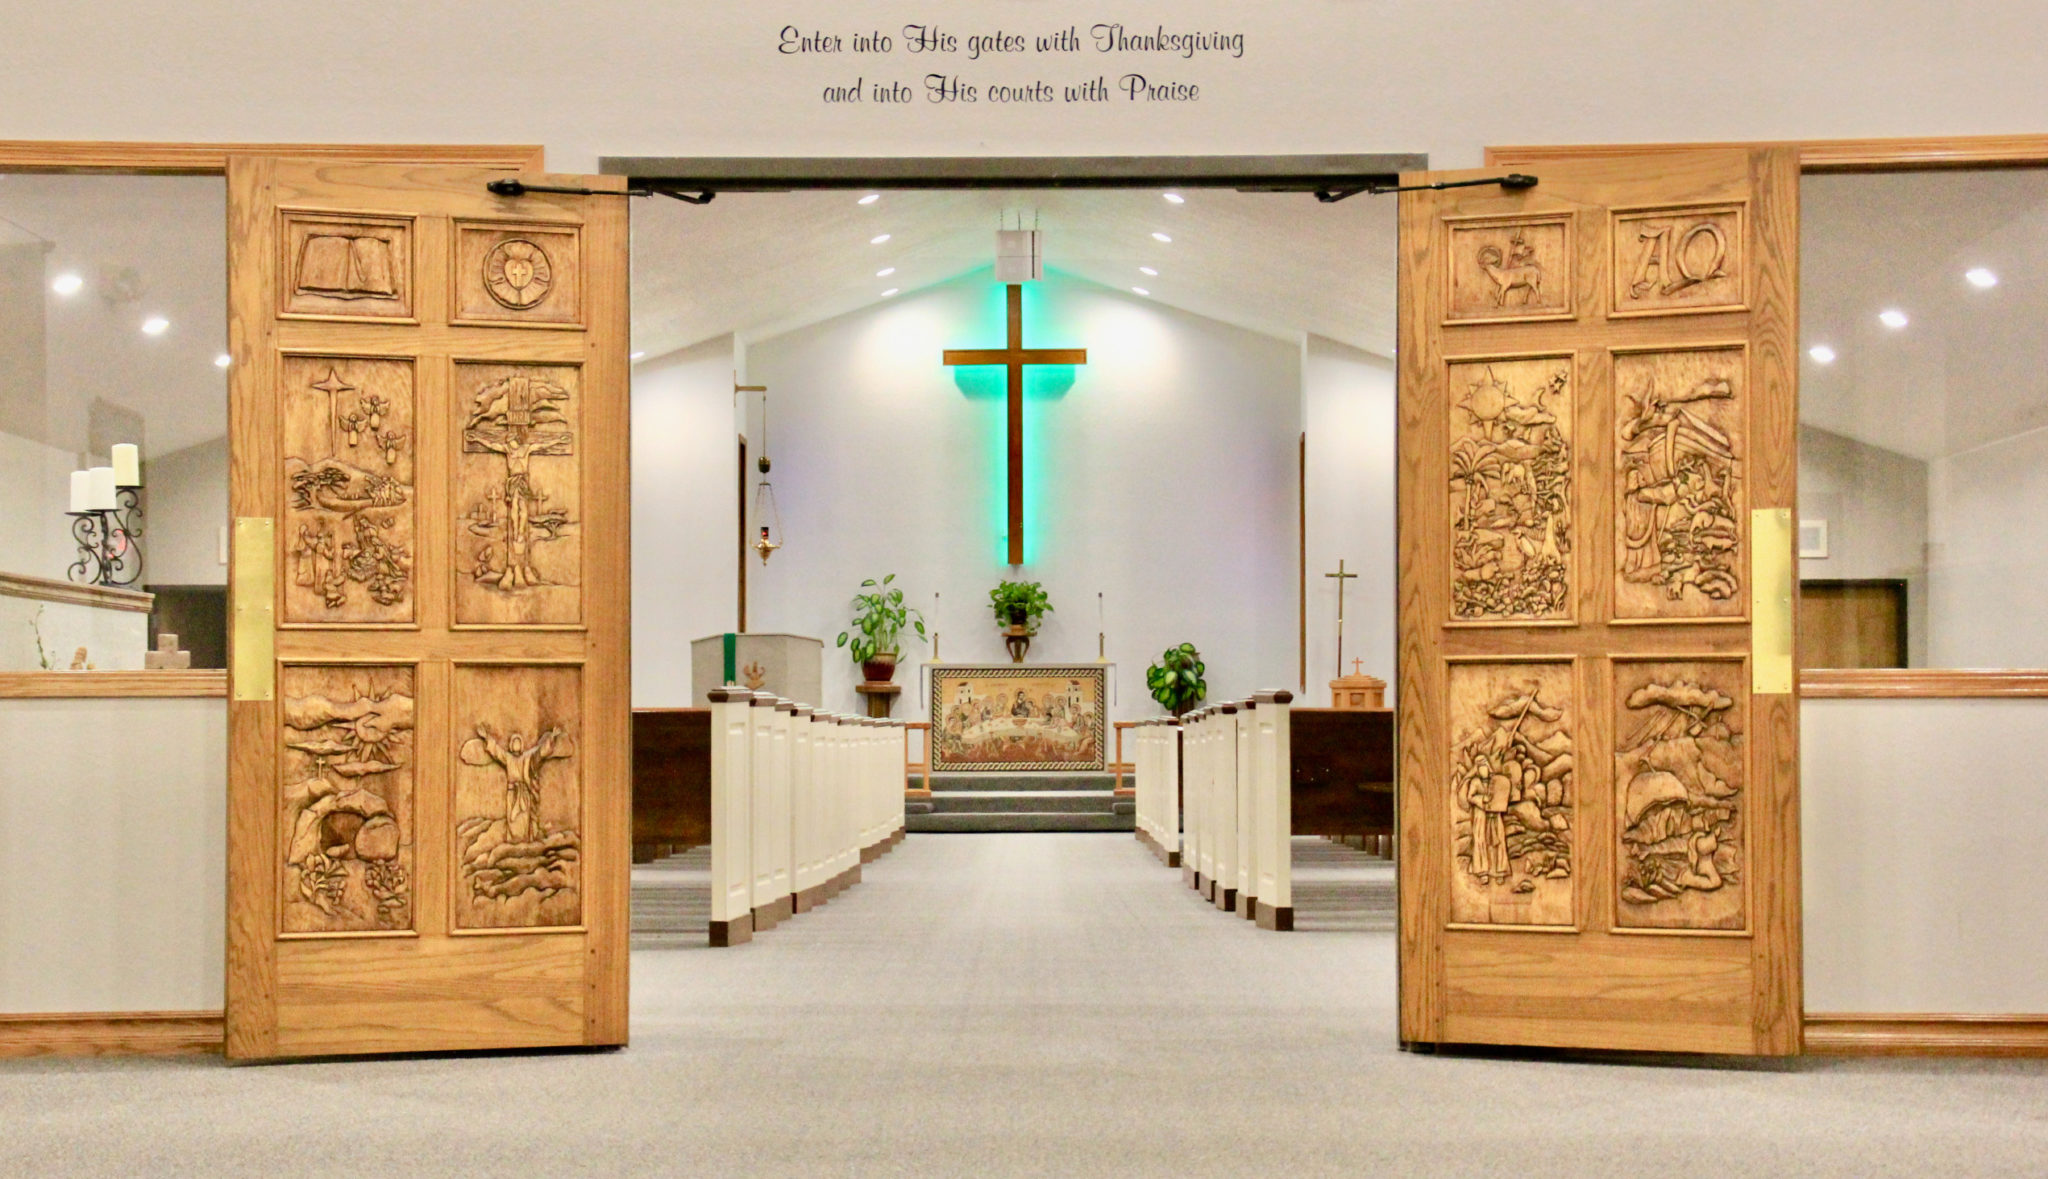 church_carved_doors_2541x1463